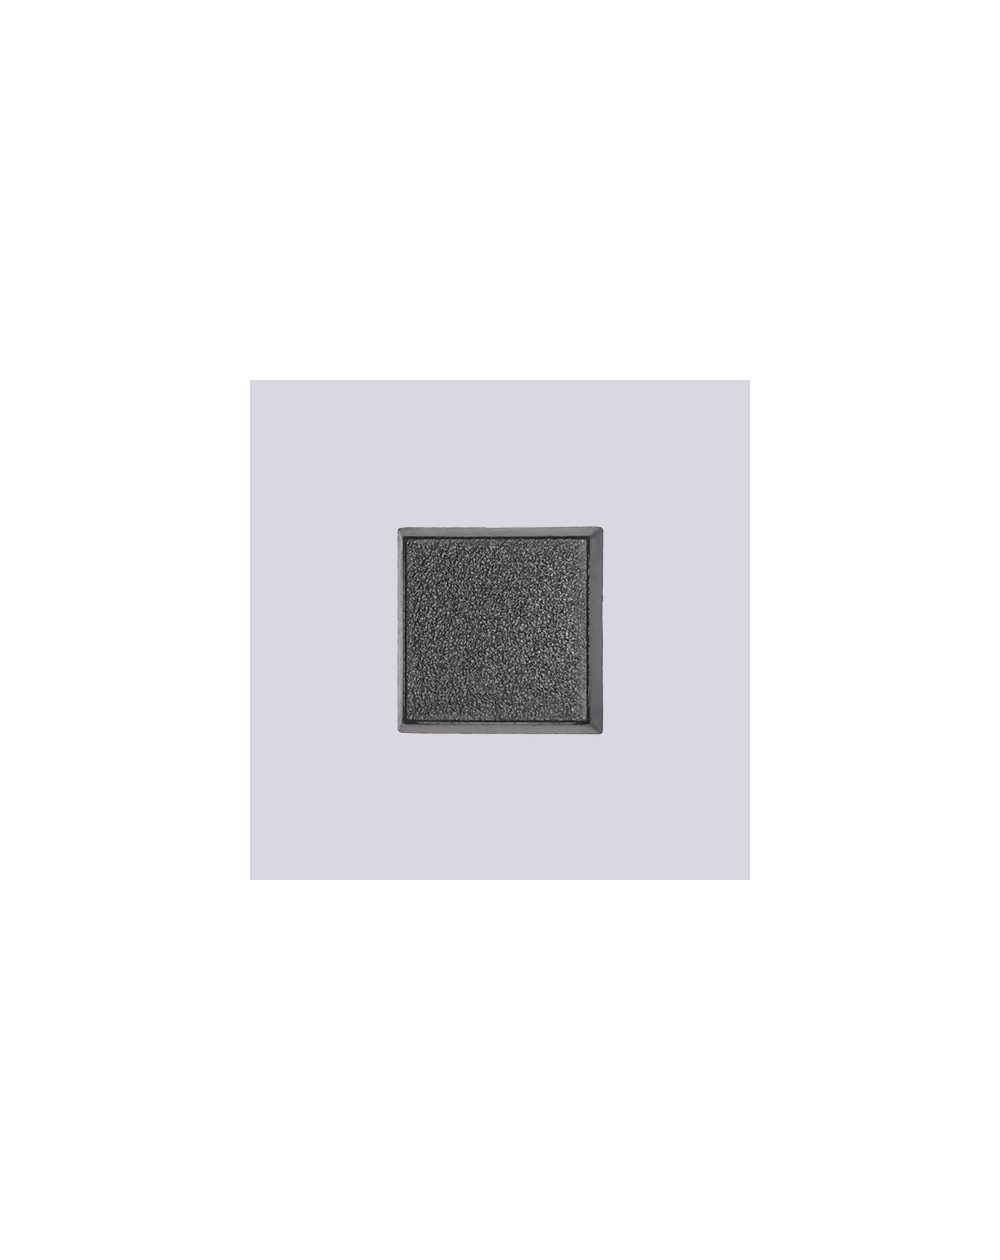 20mm/0,79in solid square Base 03